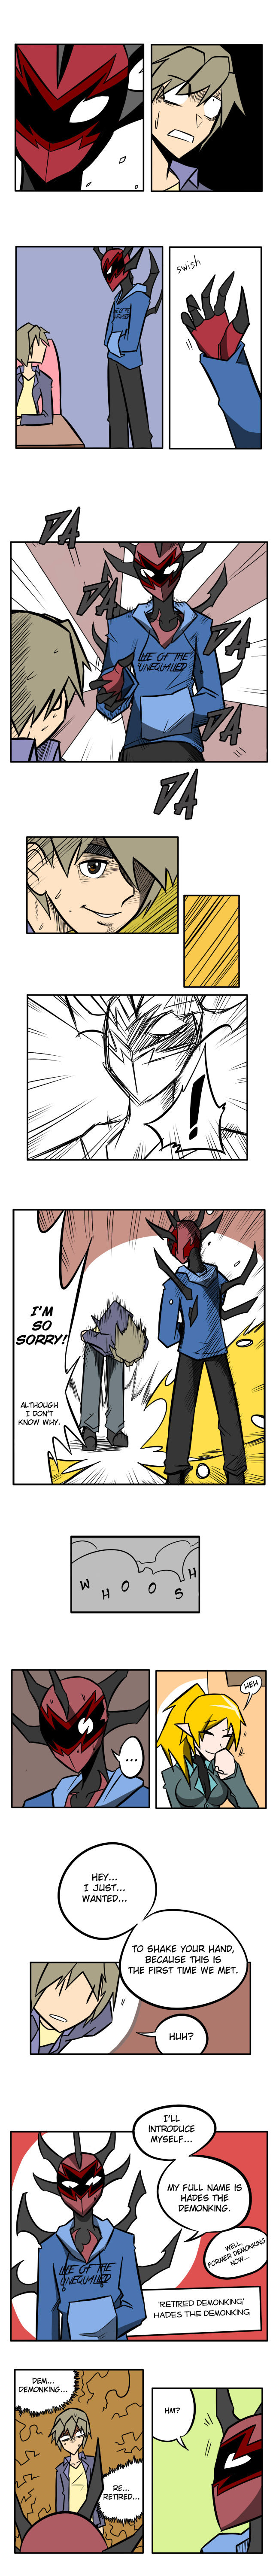 Makisi's Neighbours 3 Page 2